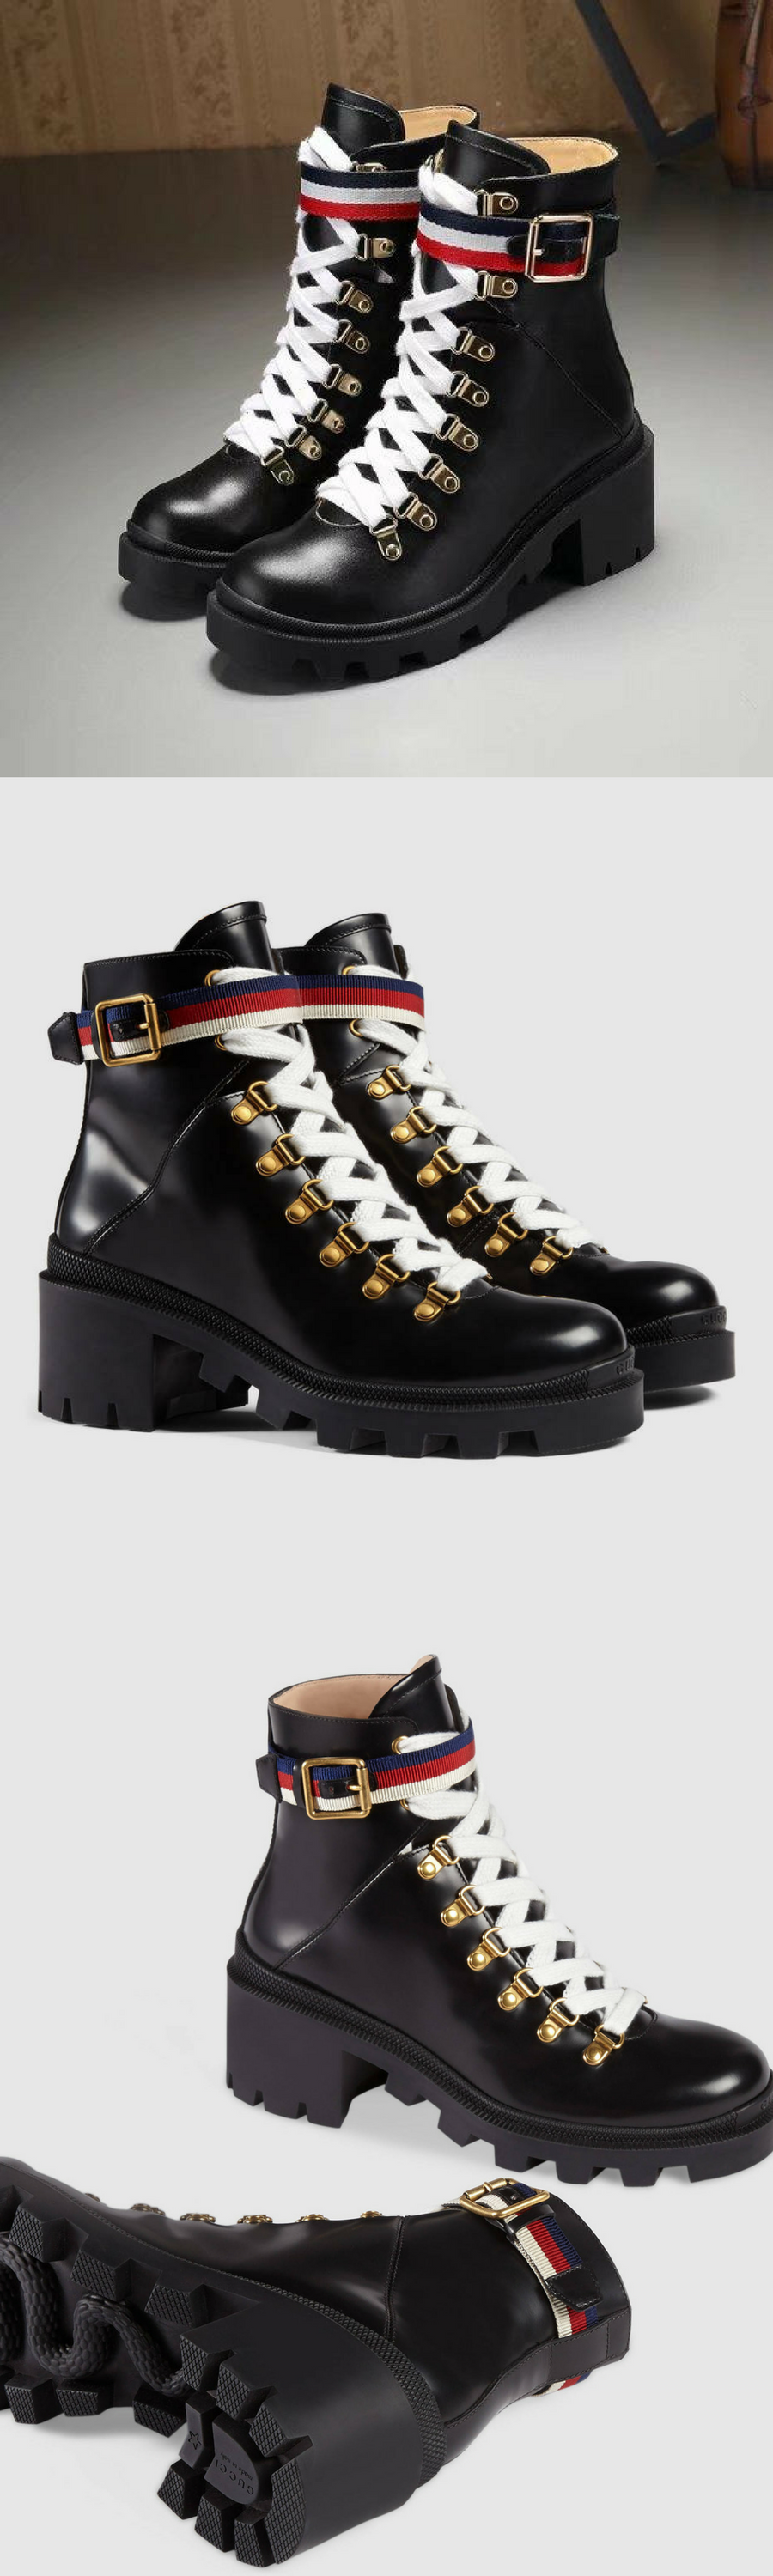 Gucci Leather Ankle Boot With Sylvie Web Anke Boots Leather Ankle Boots Street Style Shoes